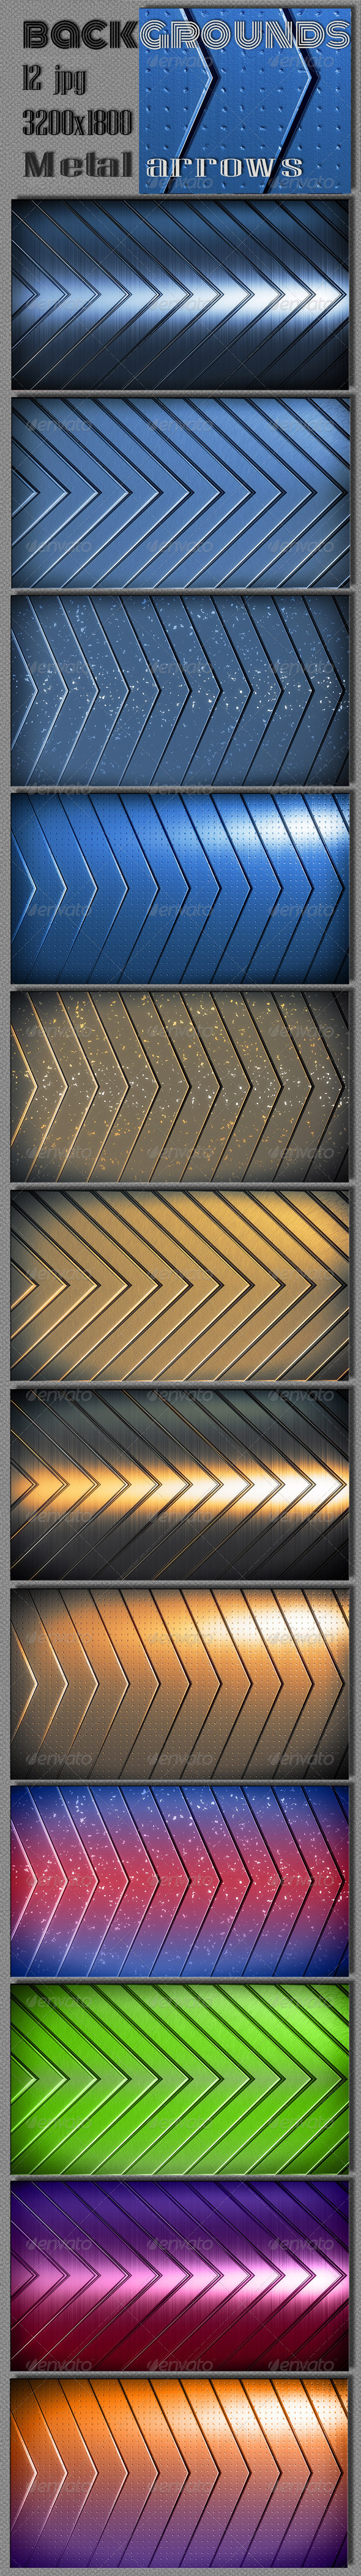 Techno Metal Arrows Backgrounds - Tech / Futuristic Backgrounds